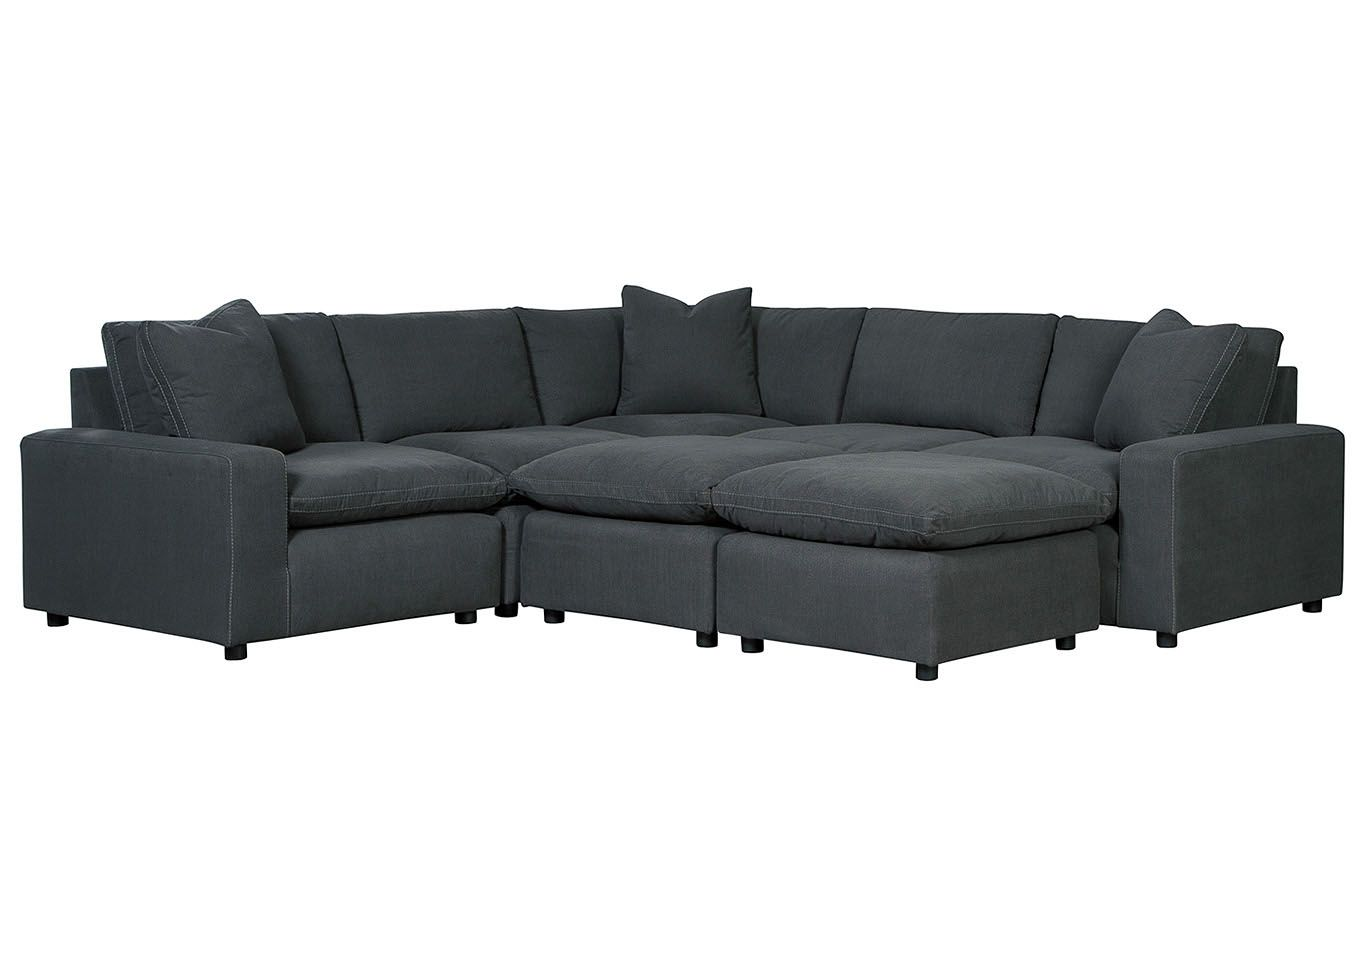 Unclaimed Freight Furniture Pa Nj Savesto Charcoal 5 Piece Sectional Sectional Charcoal Living Rooms Ottoman In Living Room #unclaimed #freight #living #room #sets